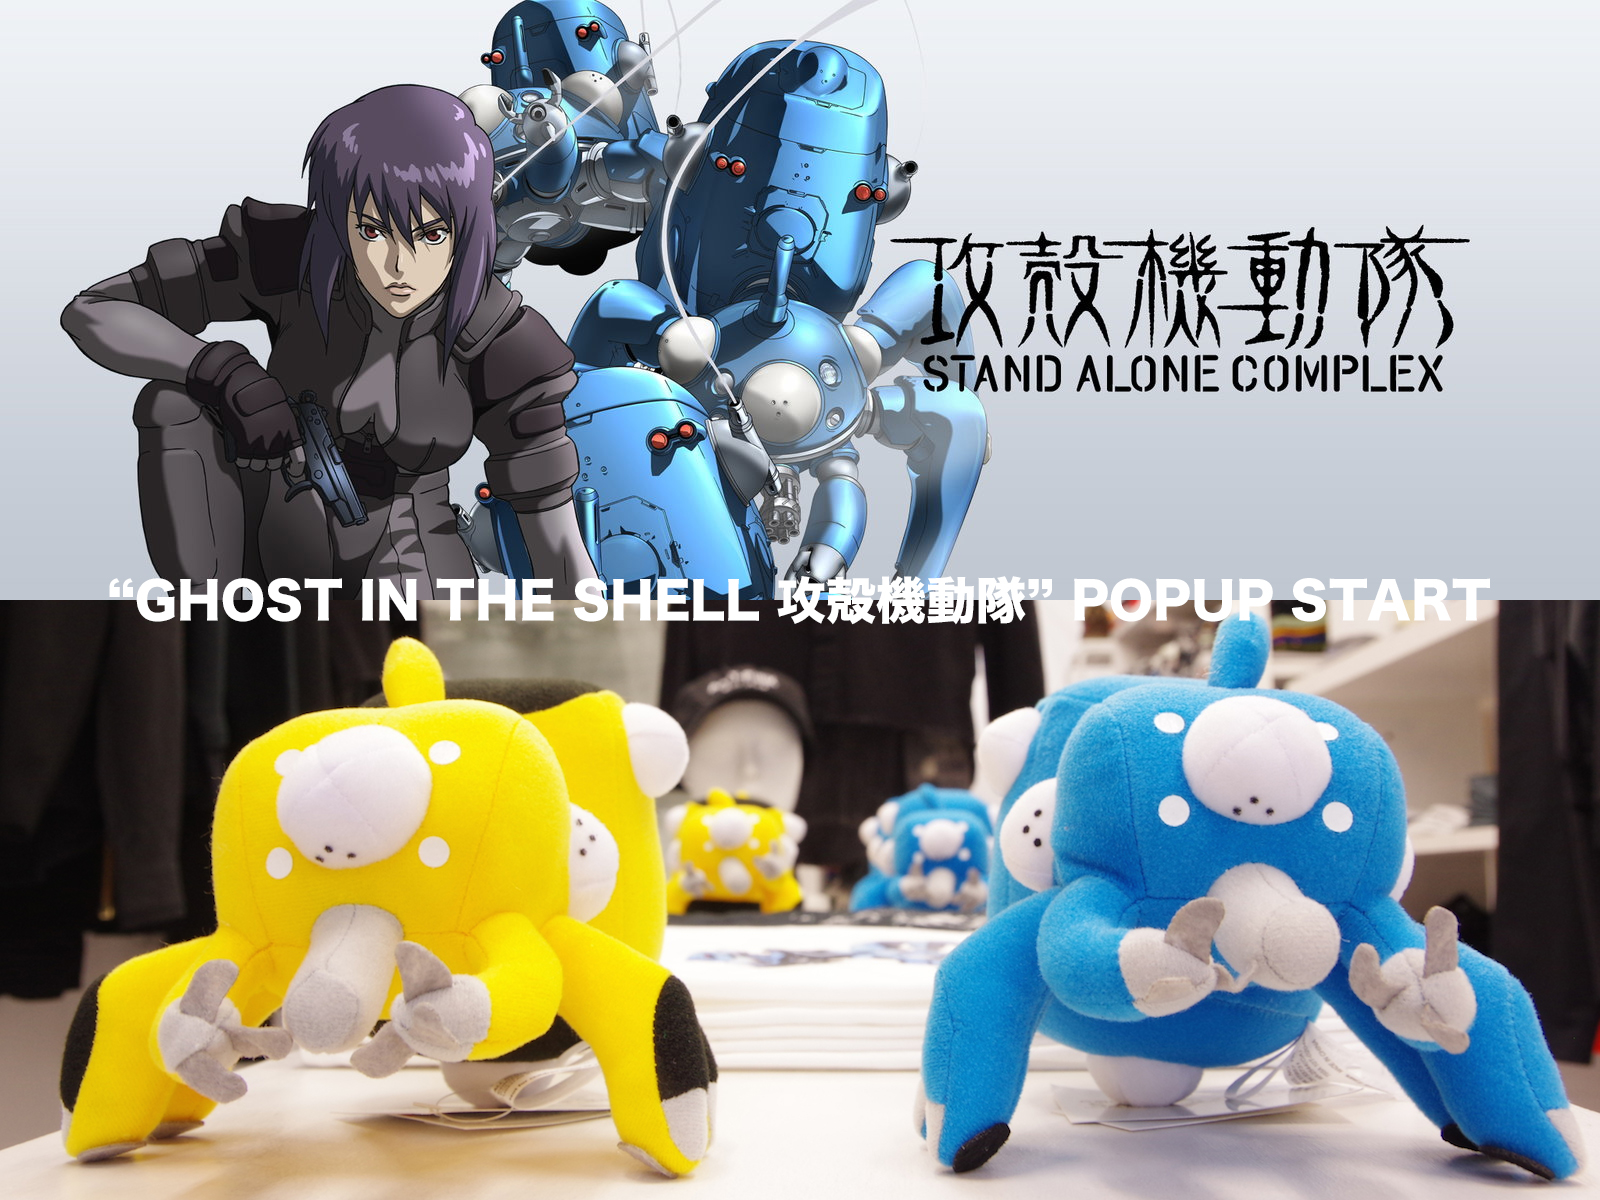 GHOST IN THE SHELL 攻殻機動隊 POPUP START